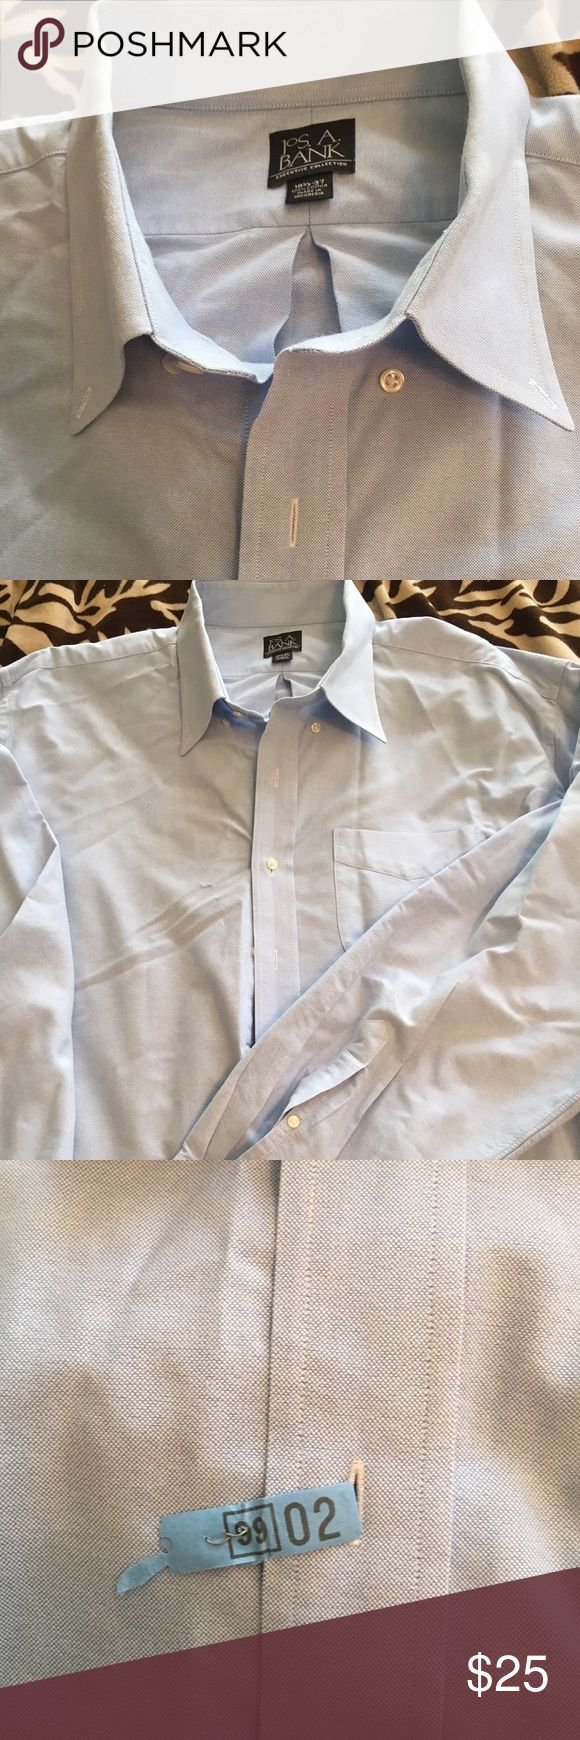 17 best ideas about big dress shirts on